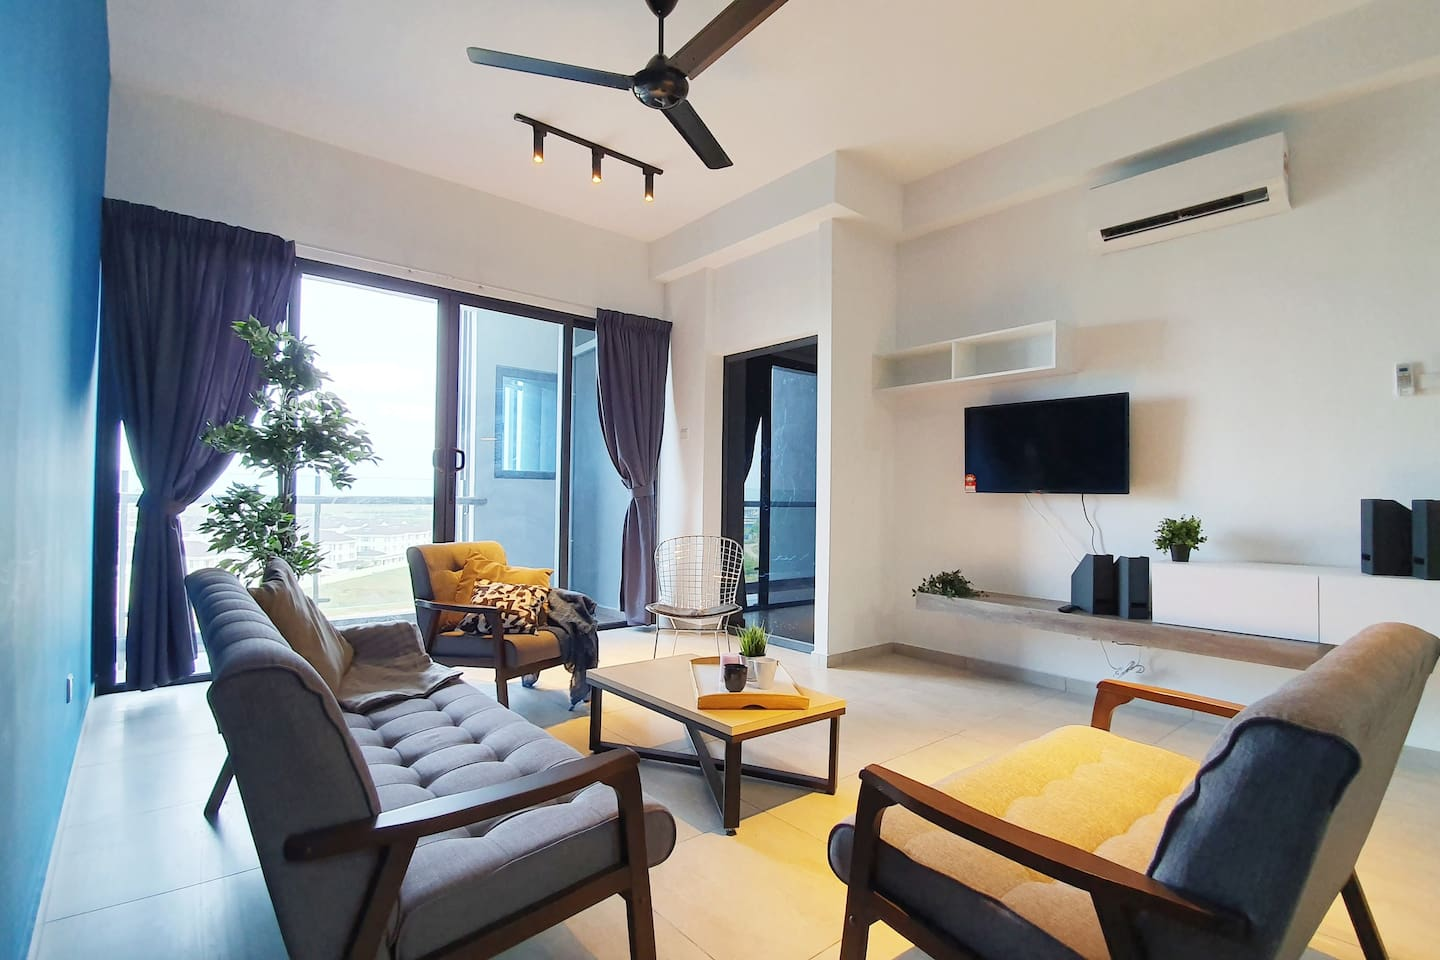 Atlantis Residence by Cobnb at Melaka, Cozy Family suites perfect for family or friend gathering or Stay-cation.